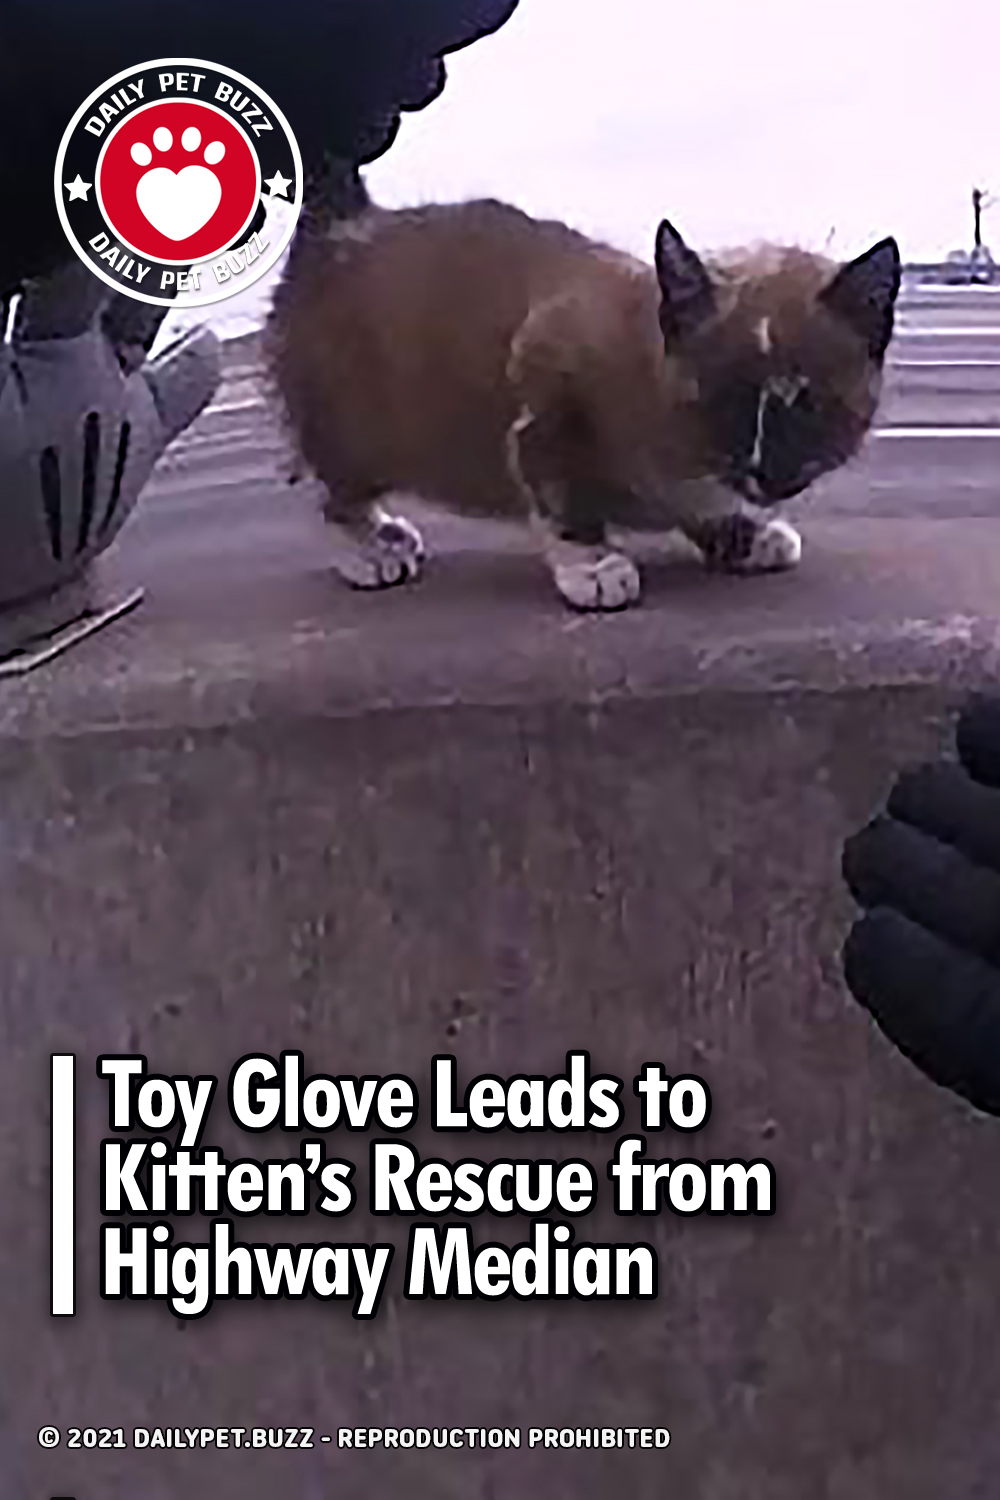 Toy Glove Leads to Kitten's Rescue from Highway Median